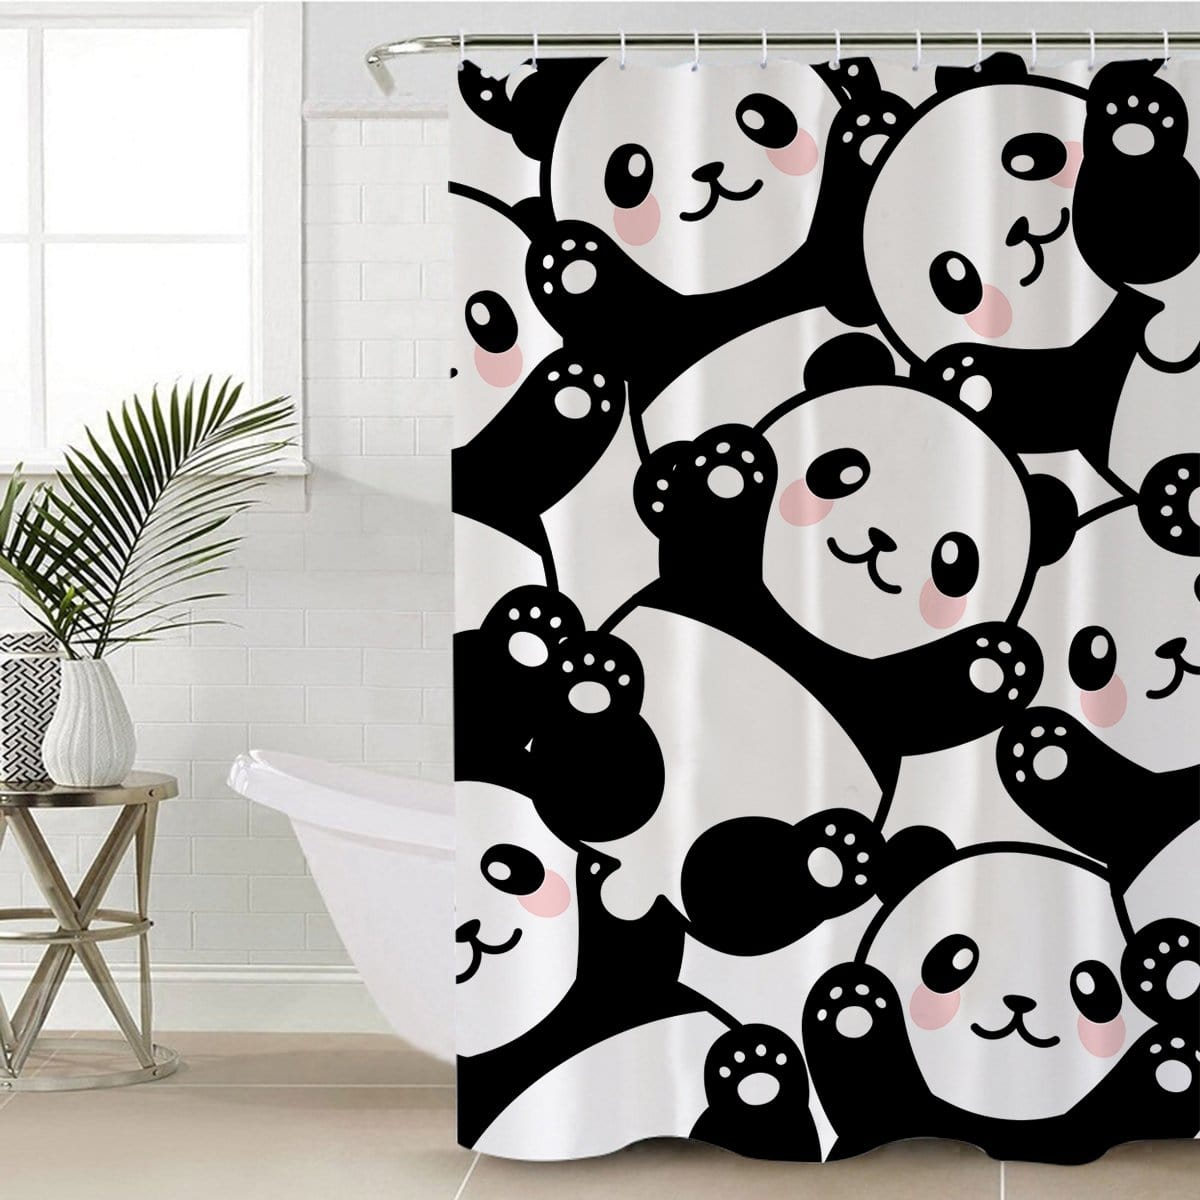 Pandalicious Shower Curtain-Pandalicious-Little Squiffy